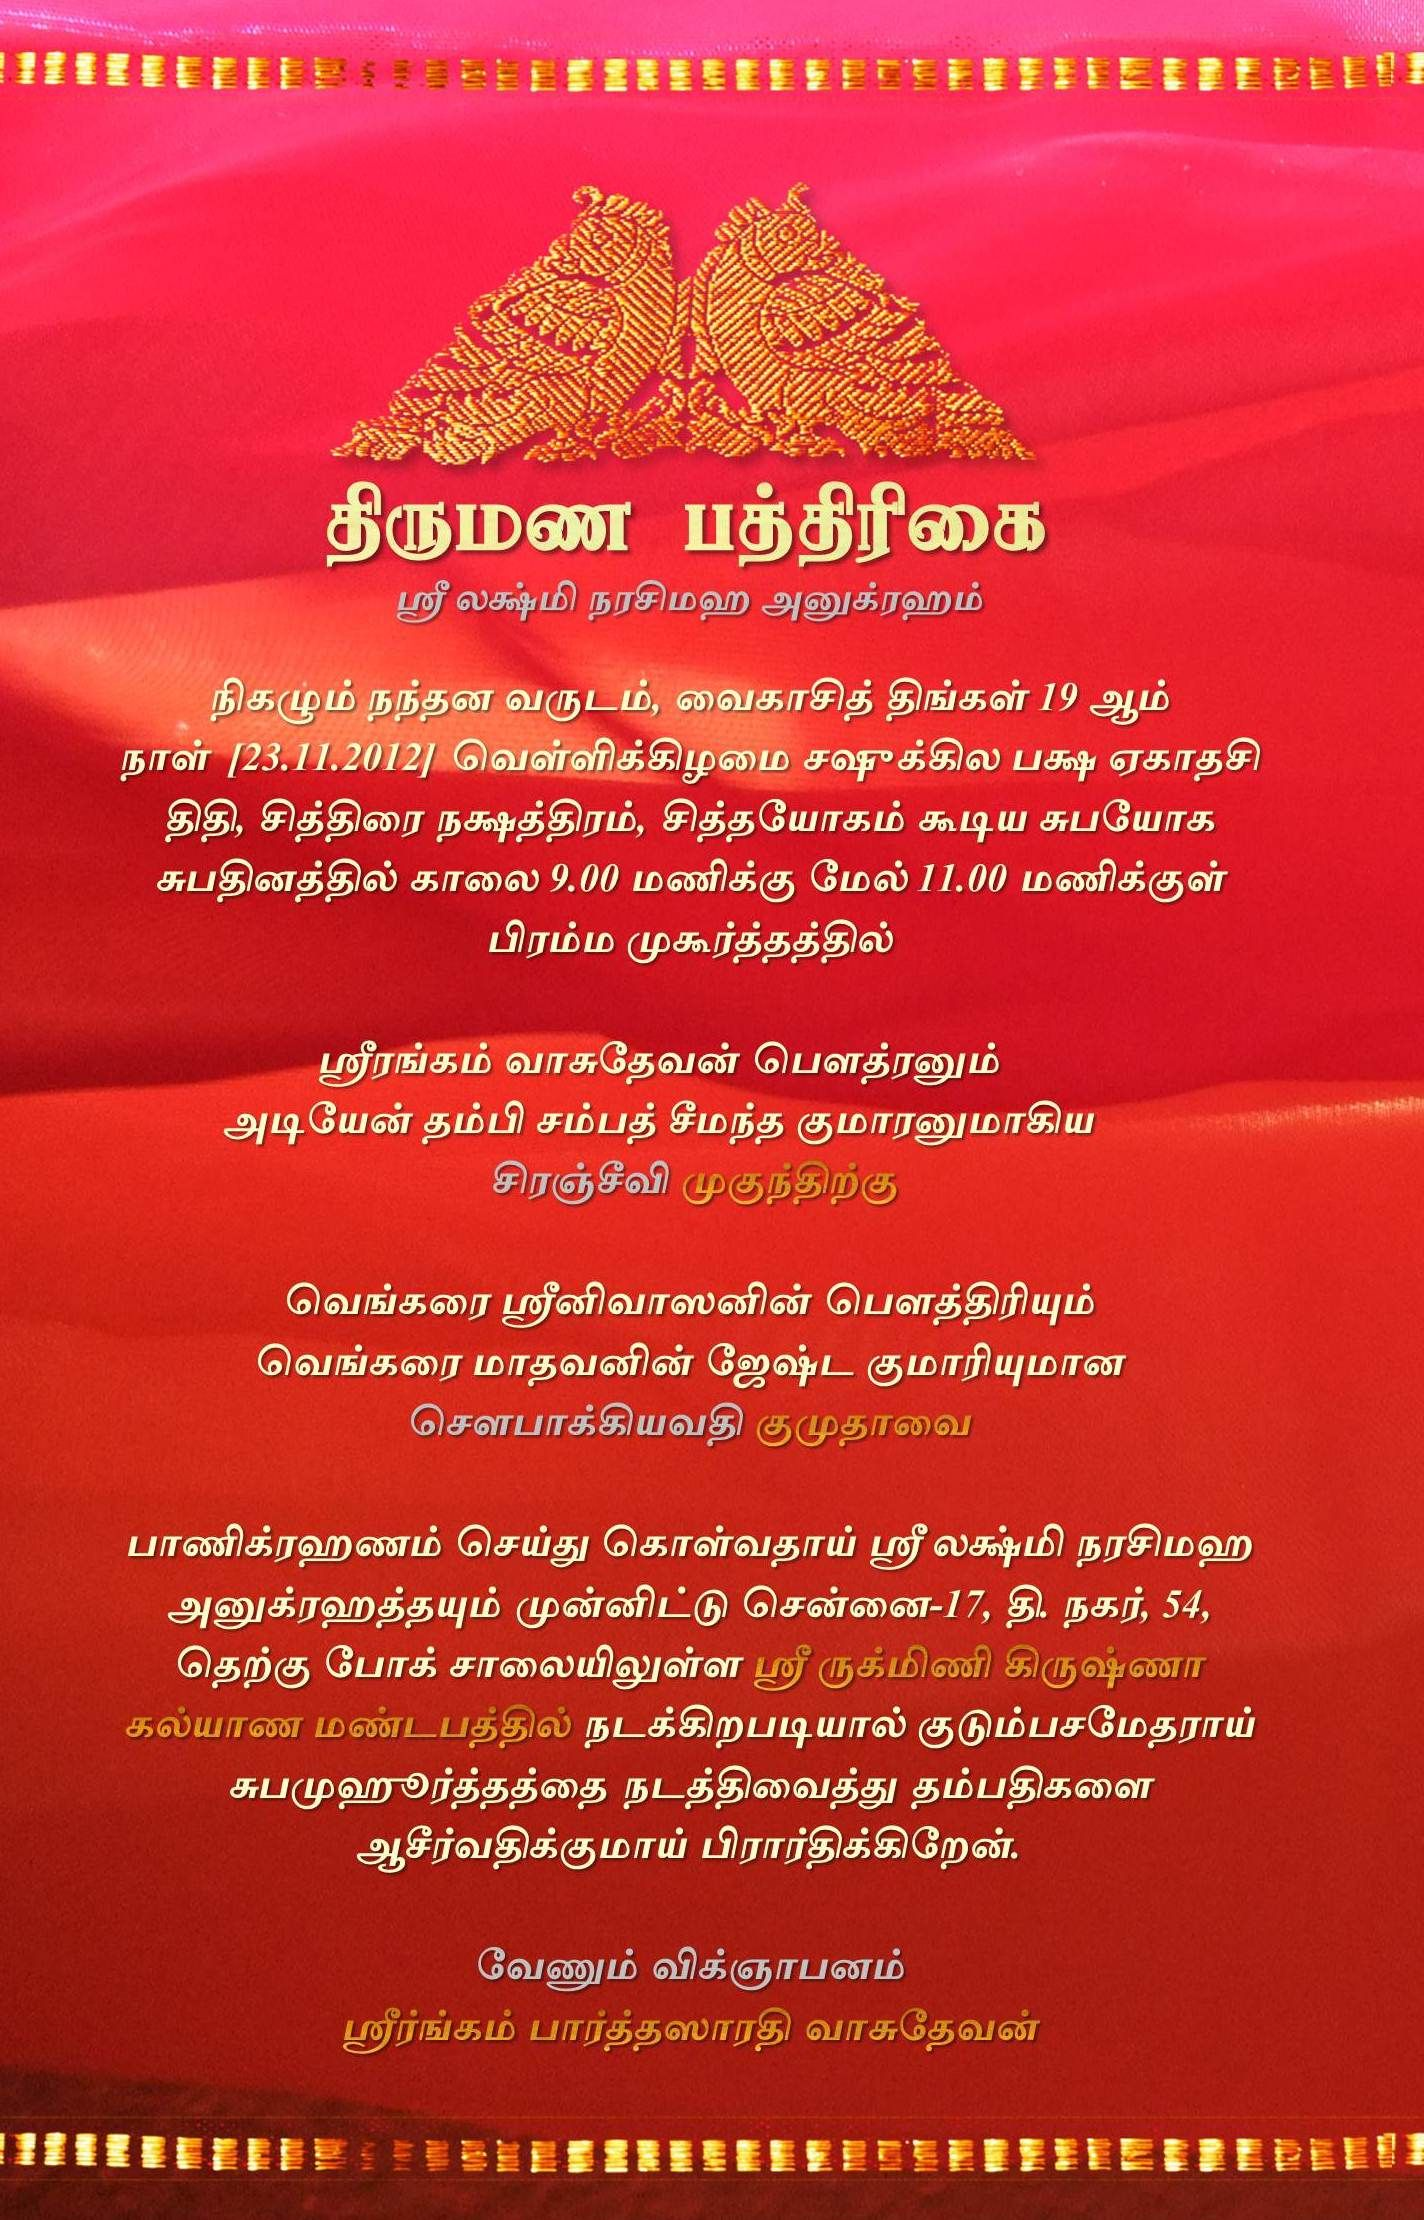 Sample Wedding Invite For Tamil Iyengar Back  A Contemporary Take On The  Traditional Pink And